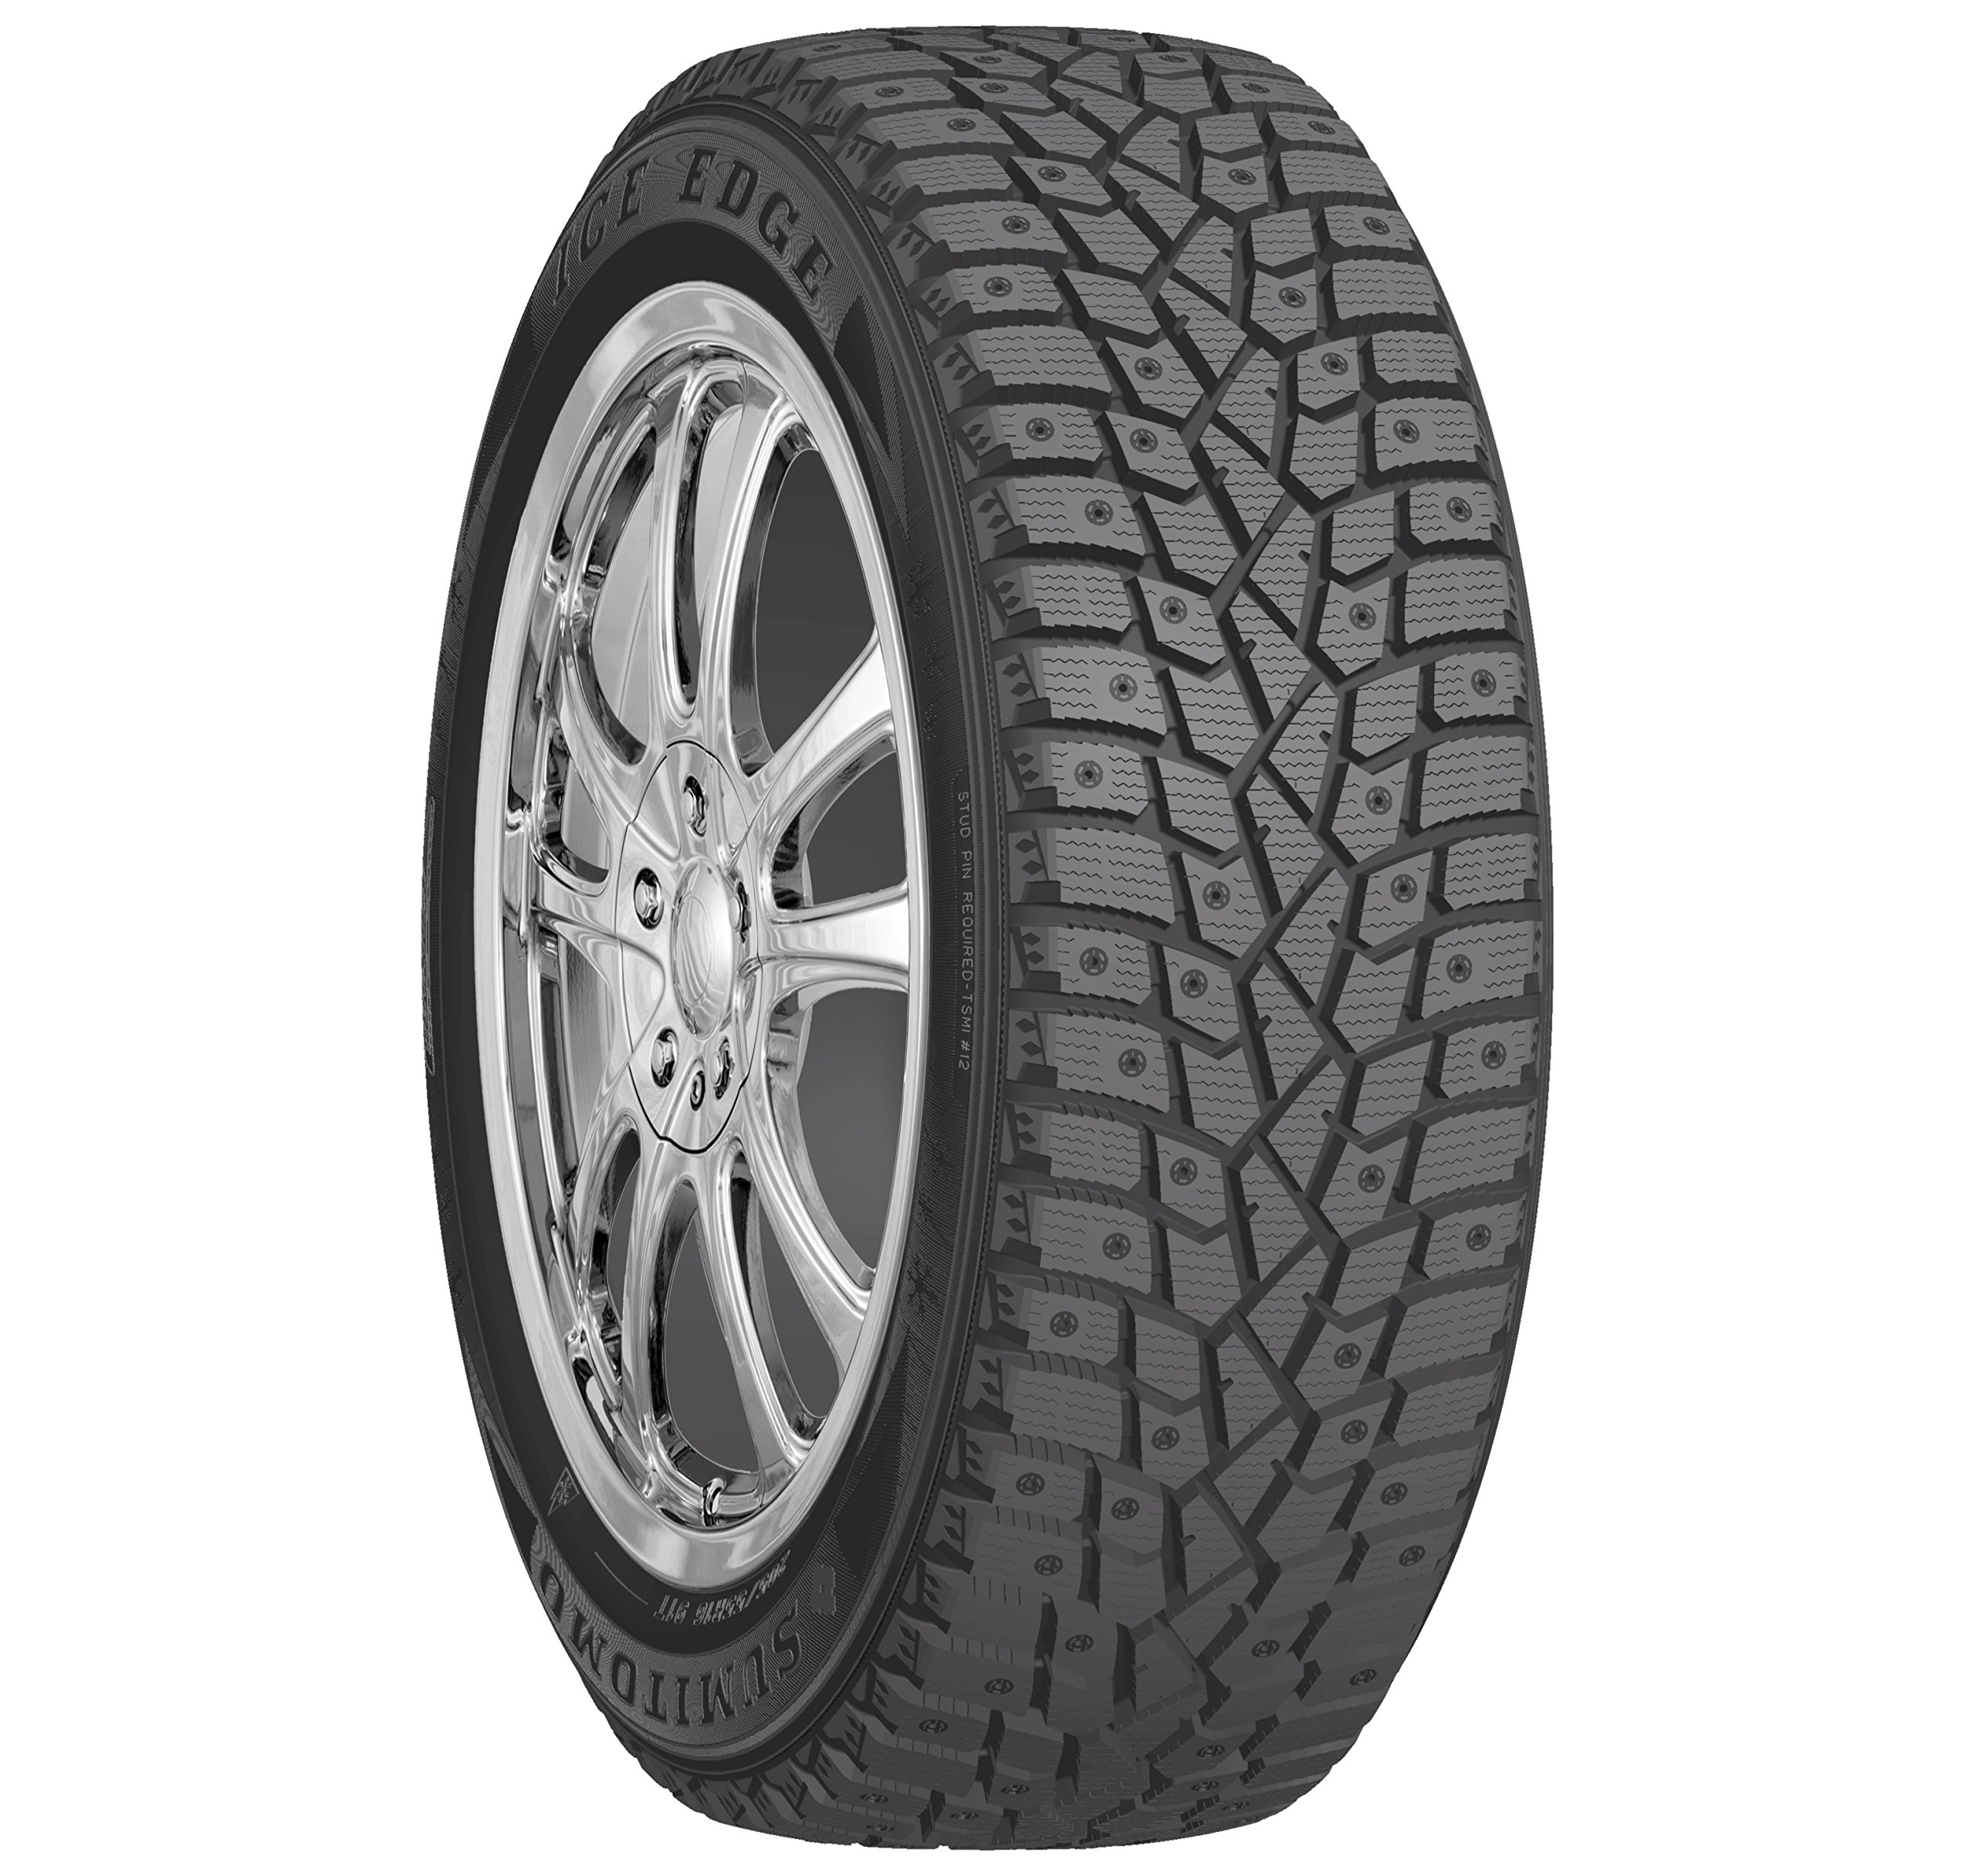 Sumitomo Ice Edge Studable-Winter Radial Tire - 245/65R17 107T by Sumitomo Tire (Image #1)